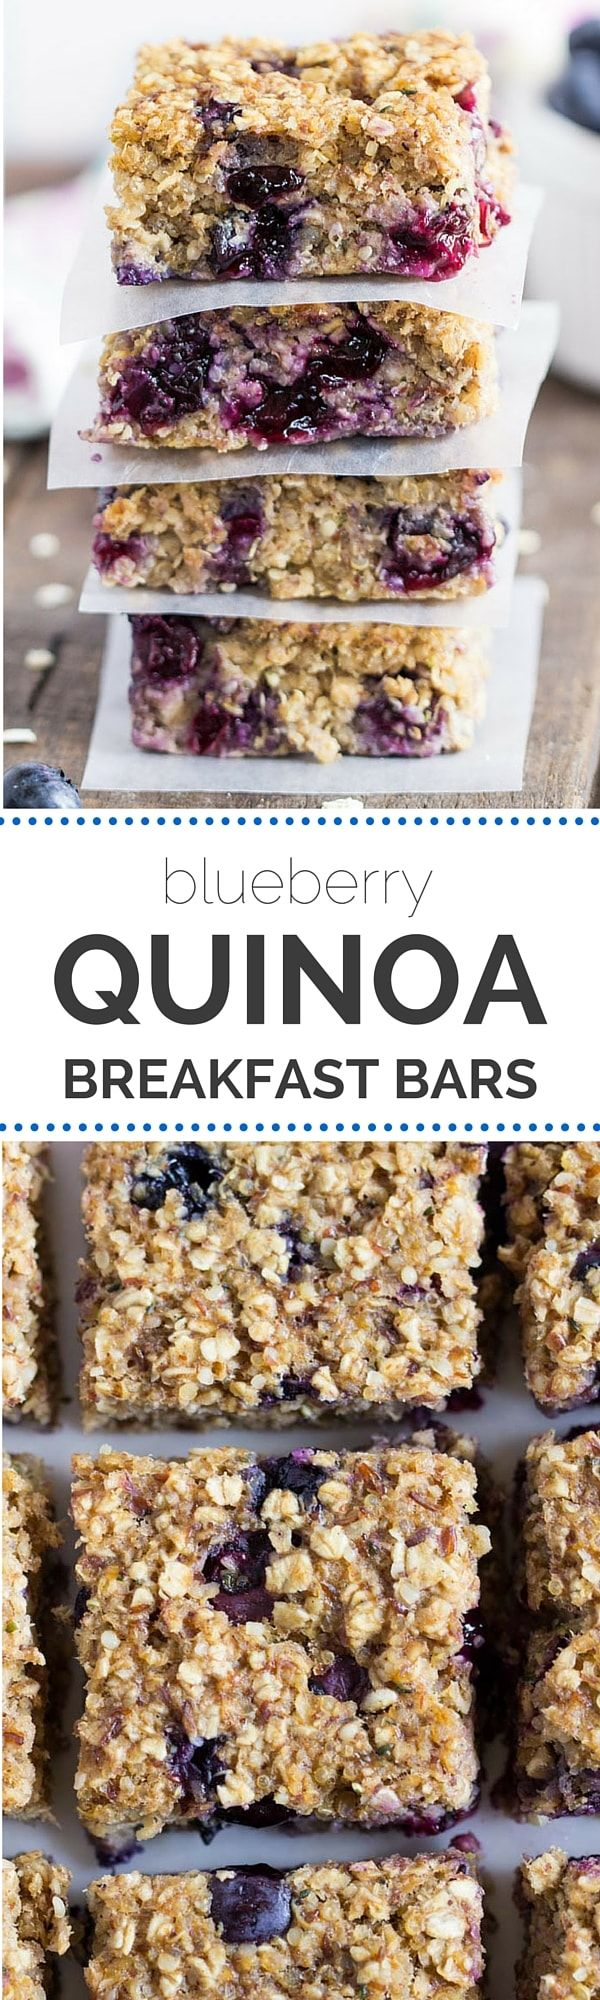 Blueberry Quinoa Breakfast Bars.  I have not sampled these yet, but they were a hit with the kids this morning! Very healthy! Little sugar!